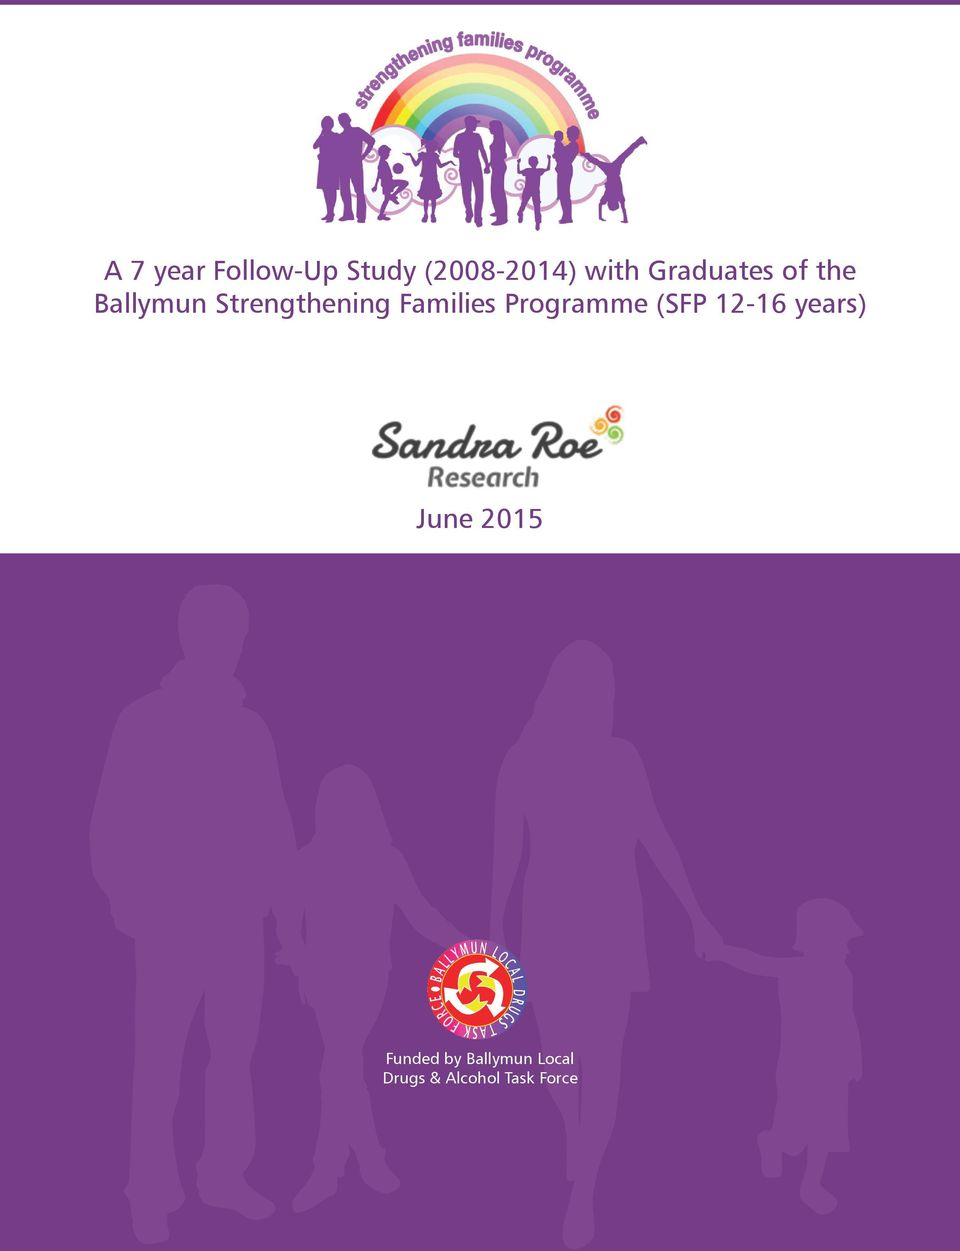 the Ballymun Strengthening Families Programme (SFP 12-16